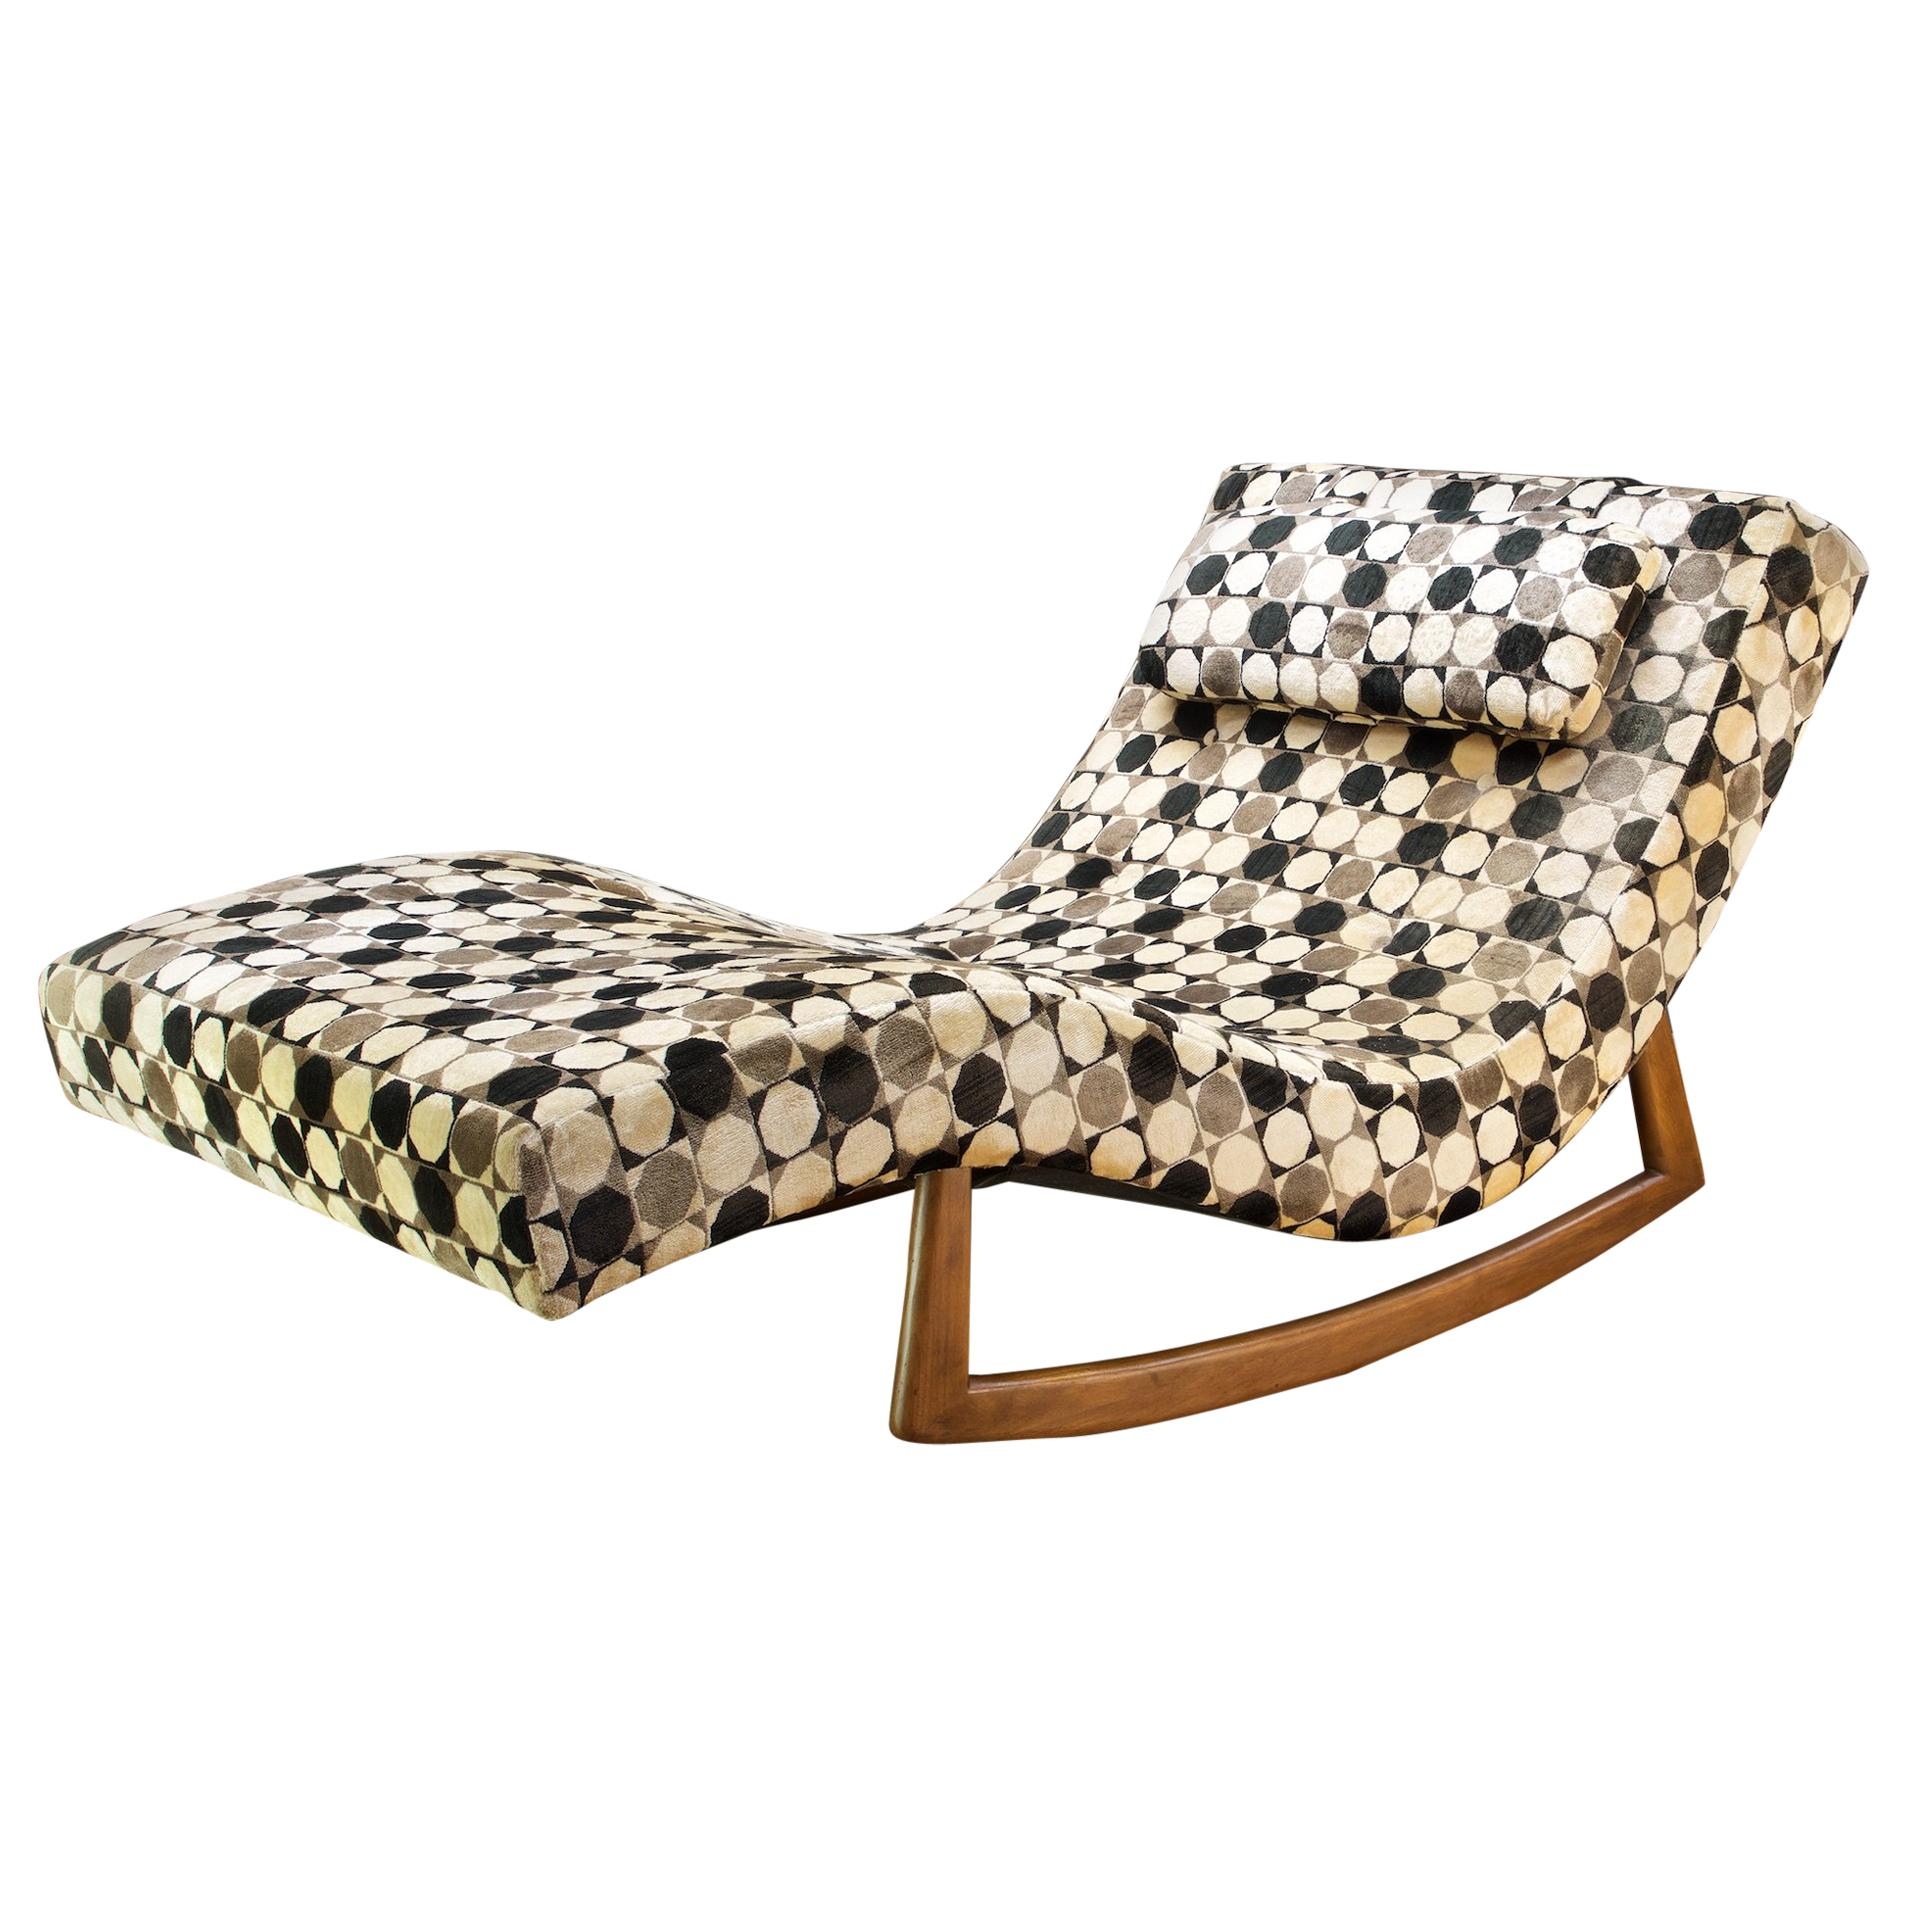 Adrian Pearsall Retro Rocking Chaise Rocker Lounge Chair Daybed For Sale At 1stdibs